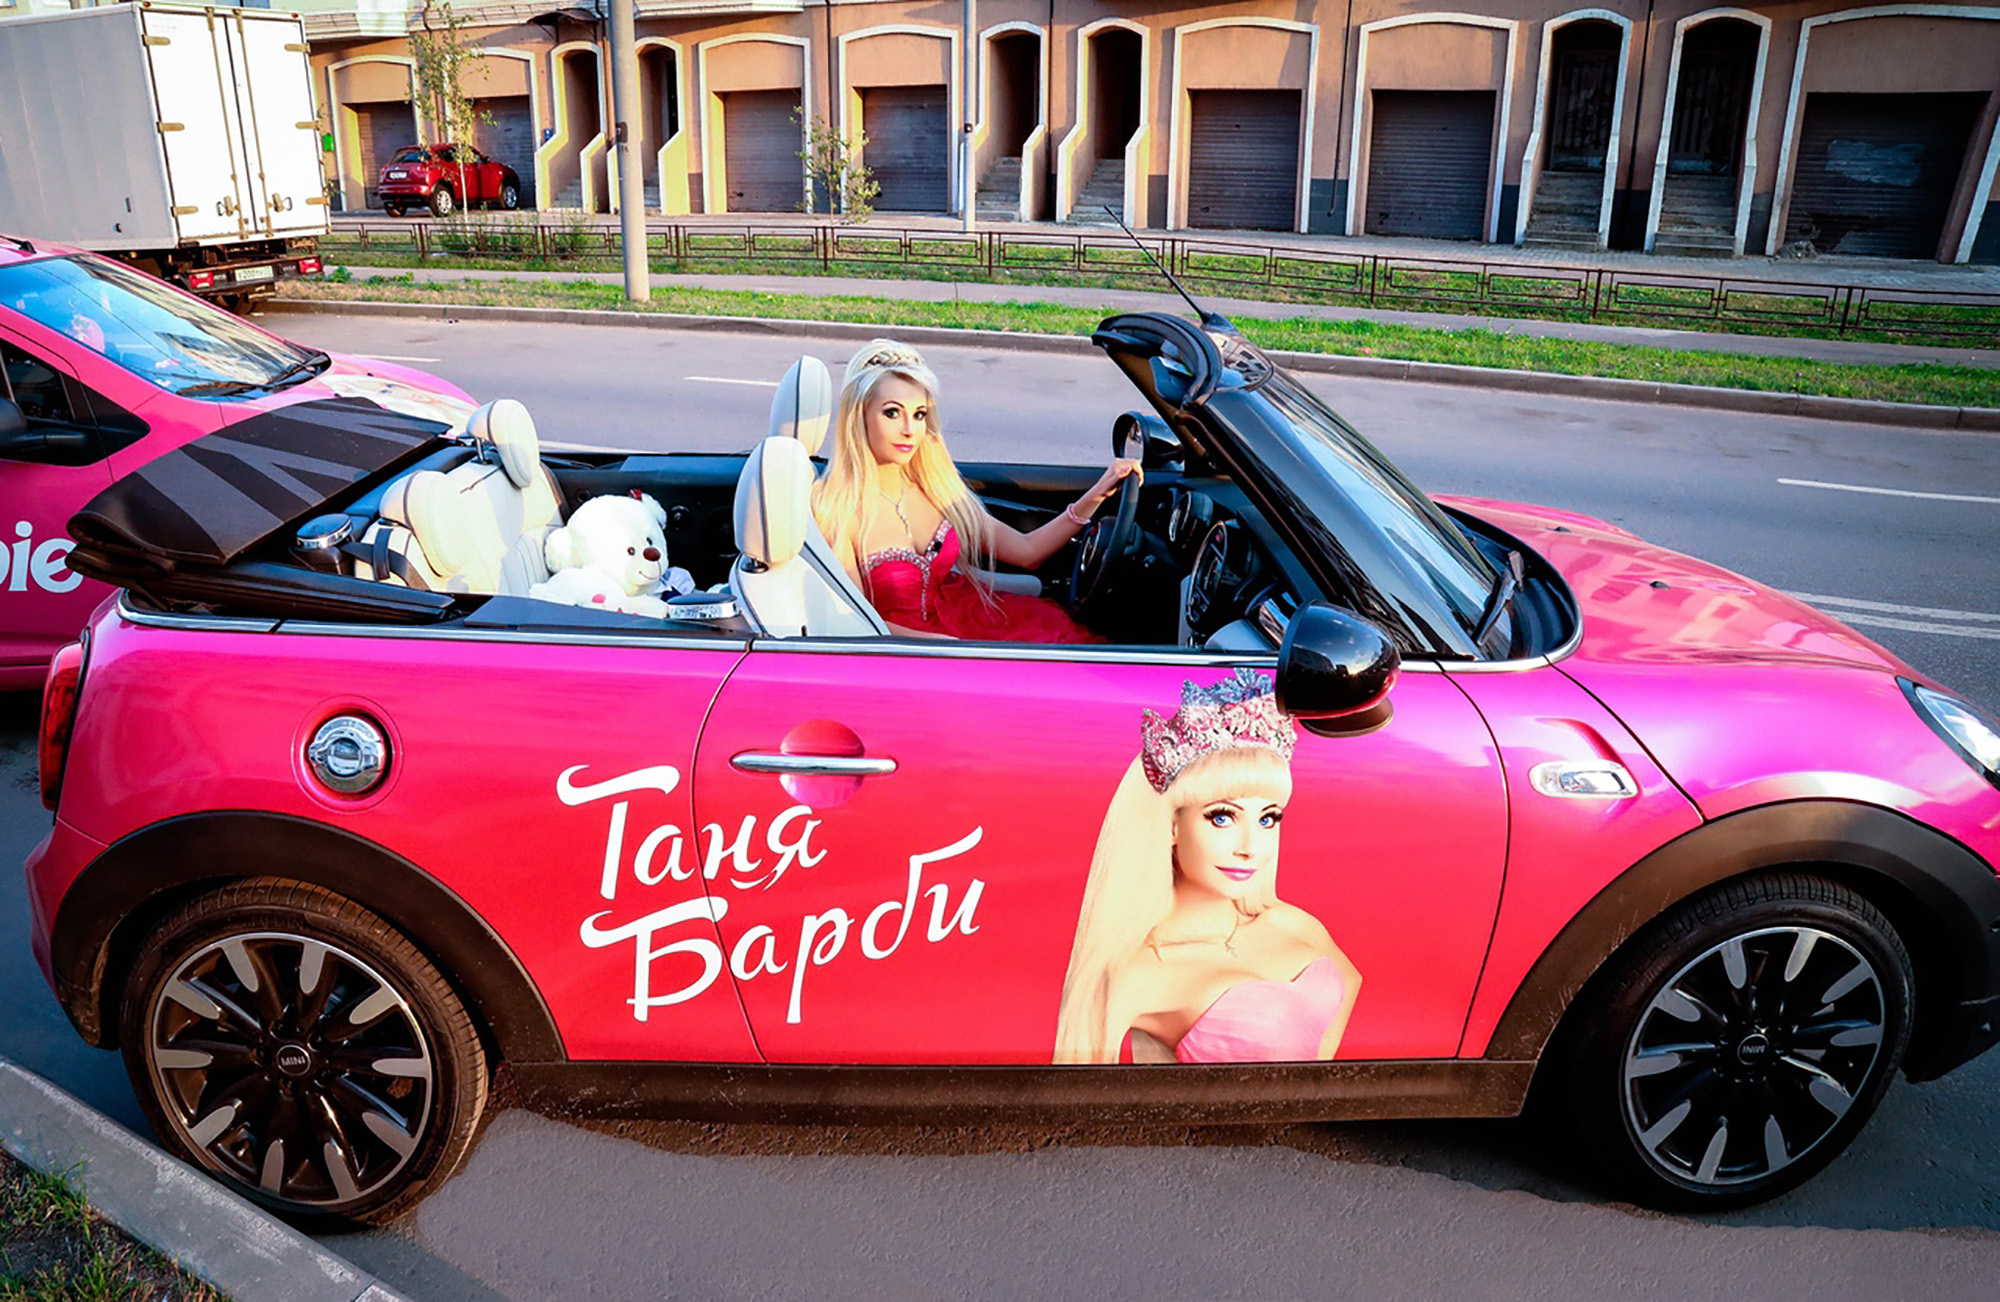 Tatiana driving her pink (obviously) Mini Cabrio. Credit: East2West News